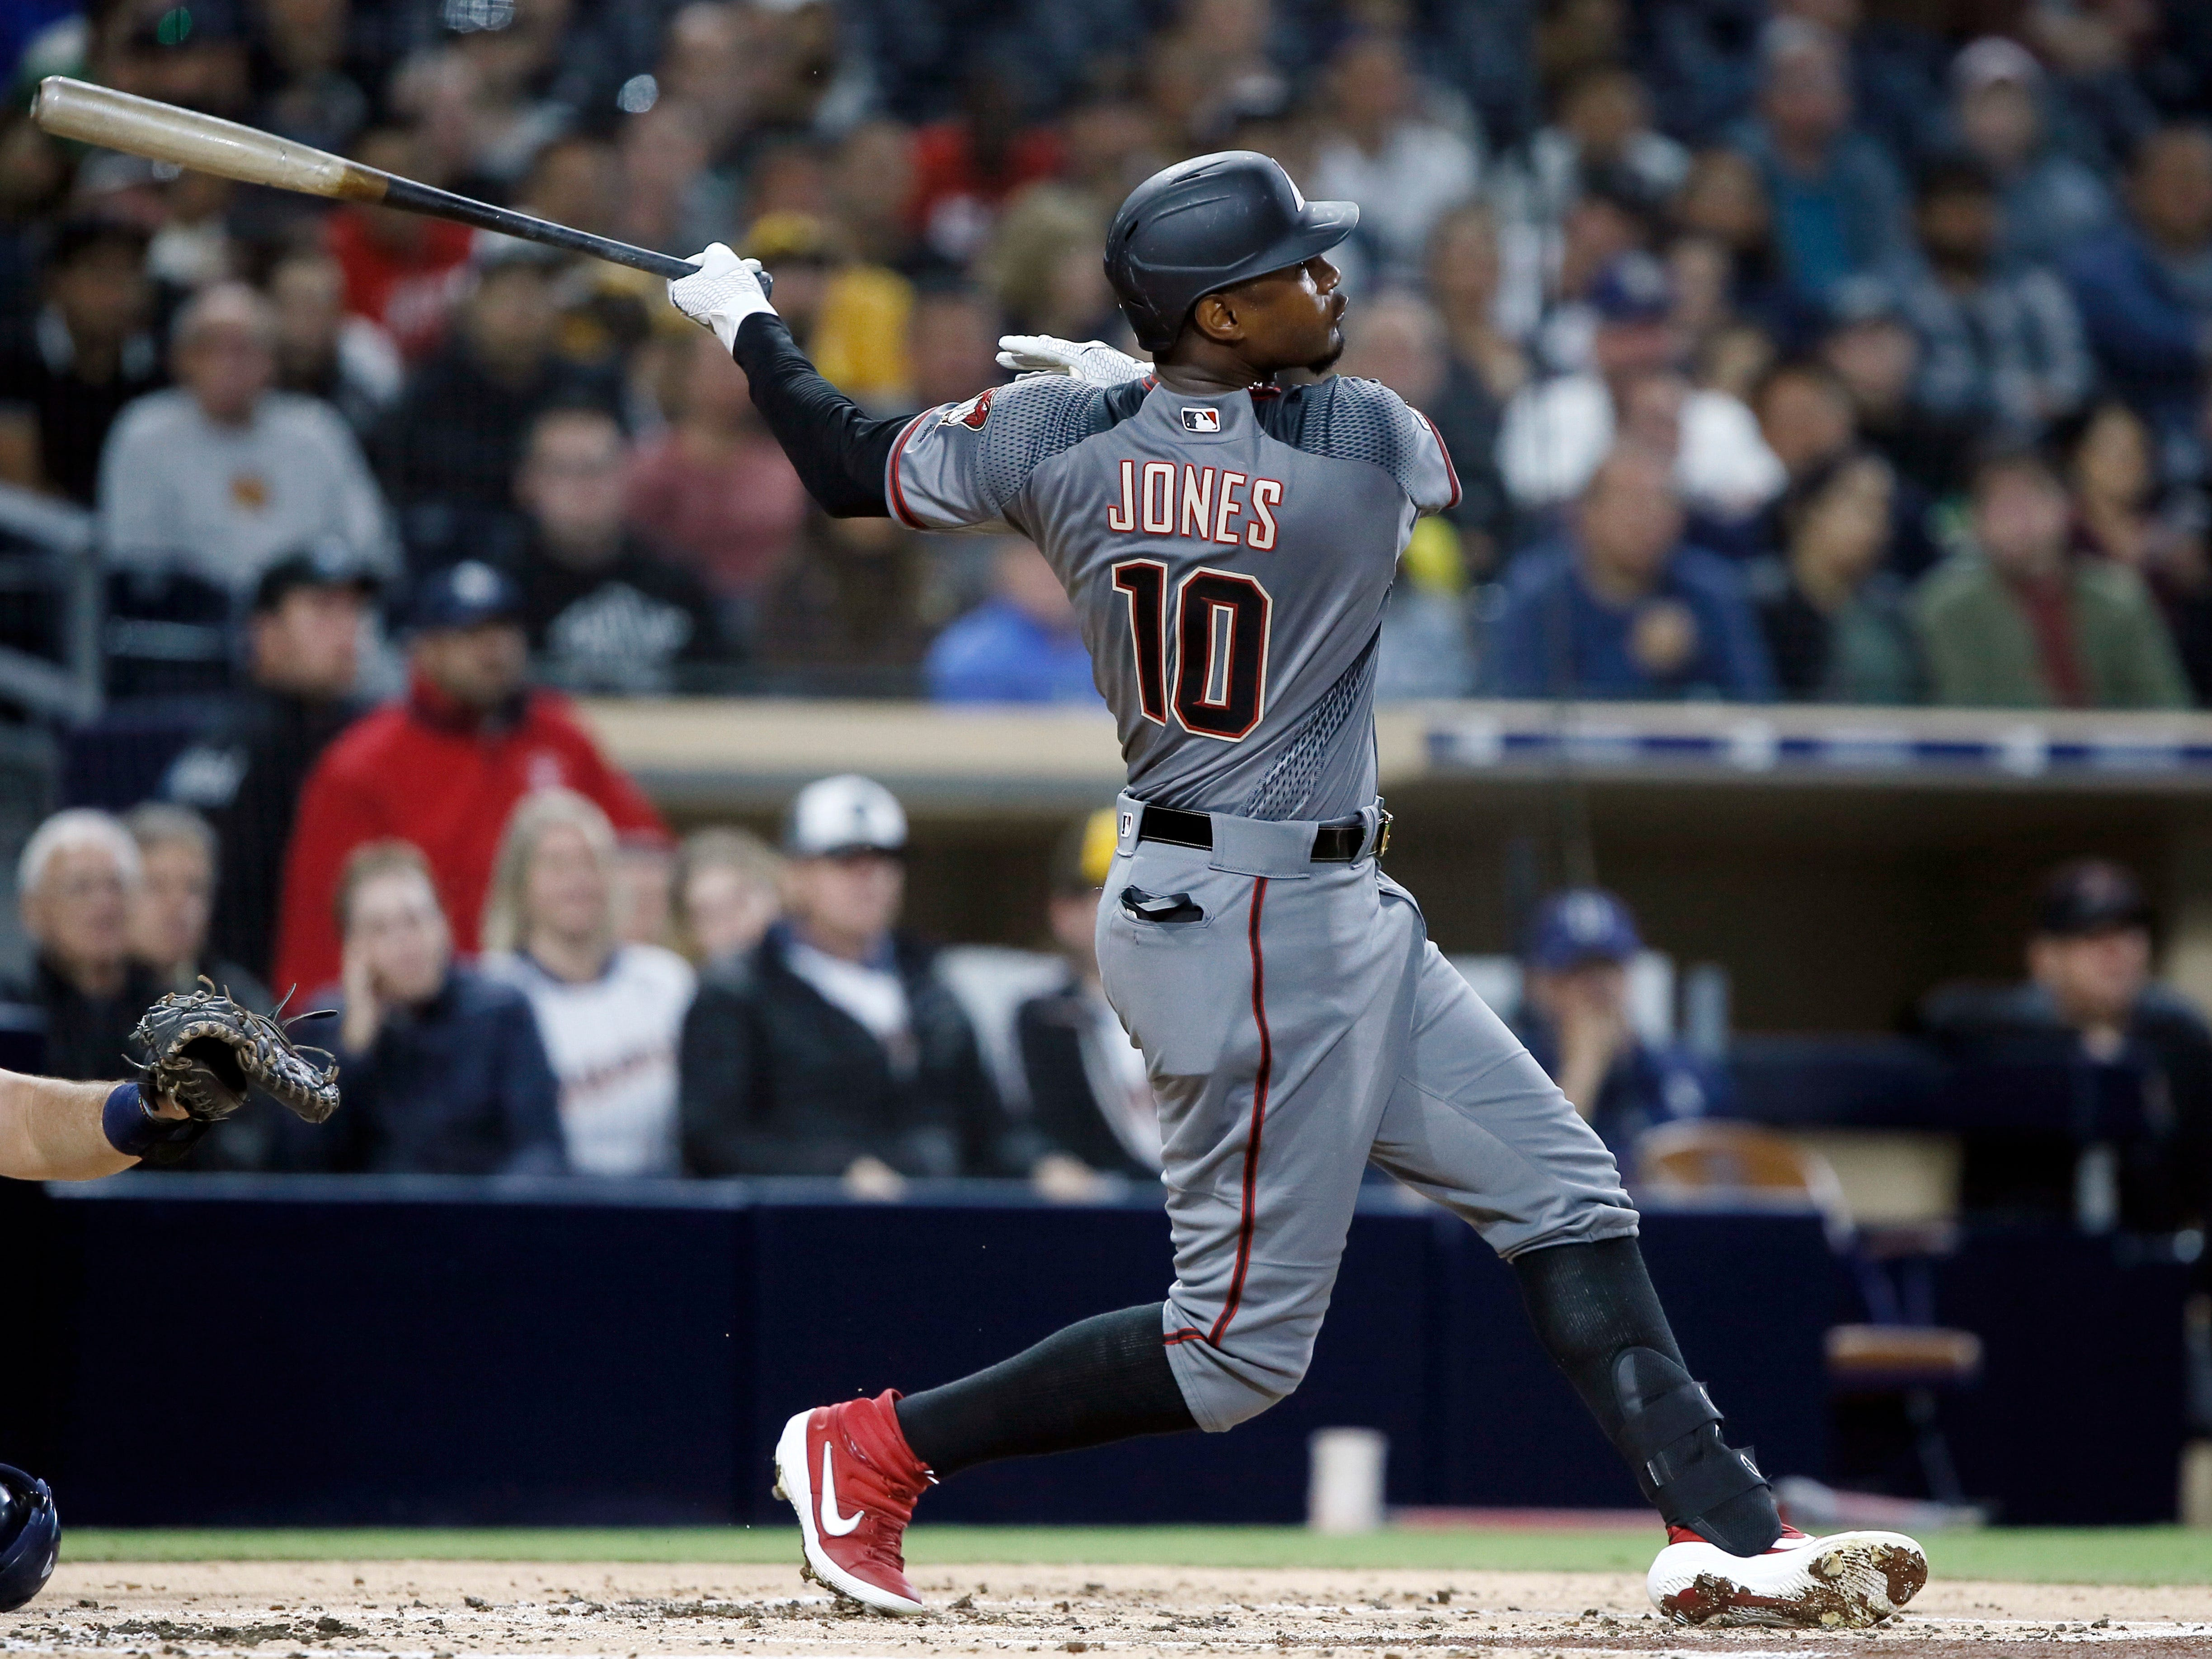 Arizona Diamondbacks' Adam Jones hits a single during the second inning of a baseball game against the San Diego Padres in San Diego, Monday, April 1, 2019. (AP Photo/Alex Gallardo)